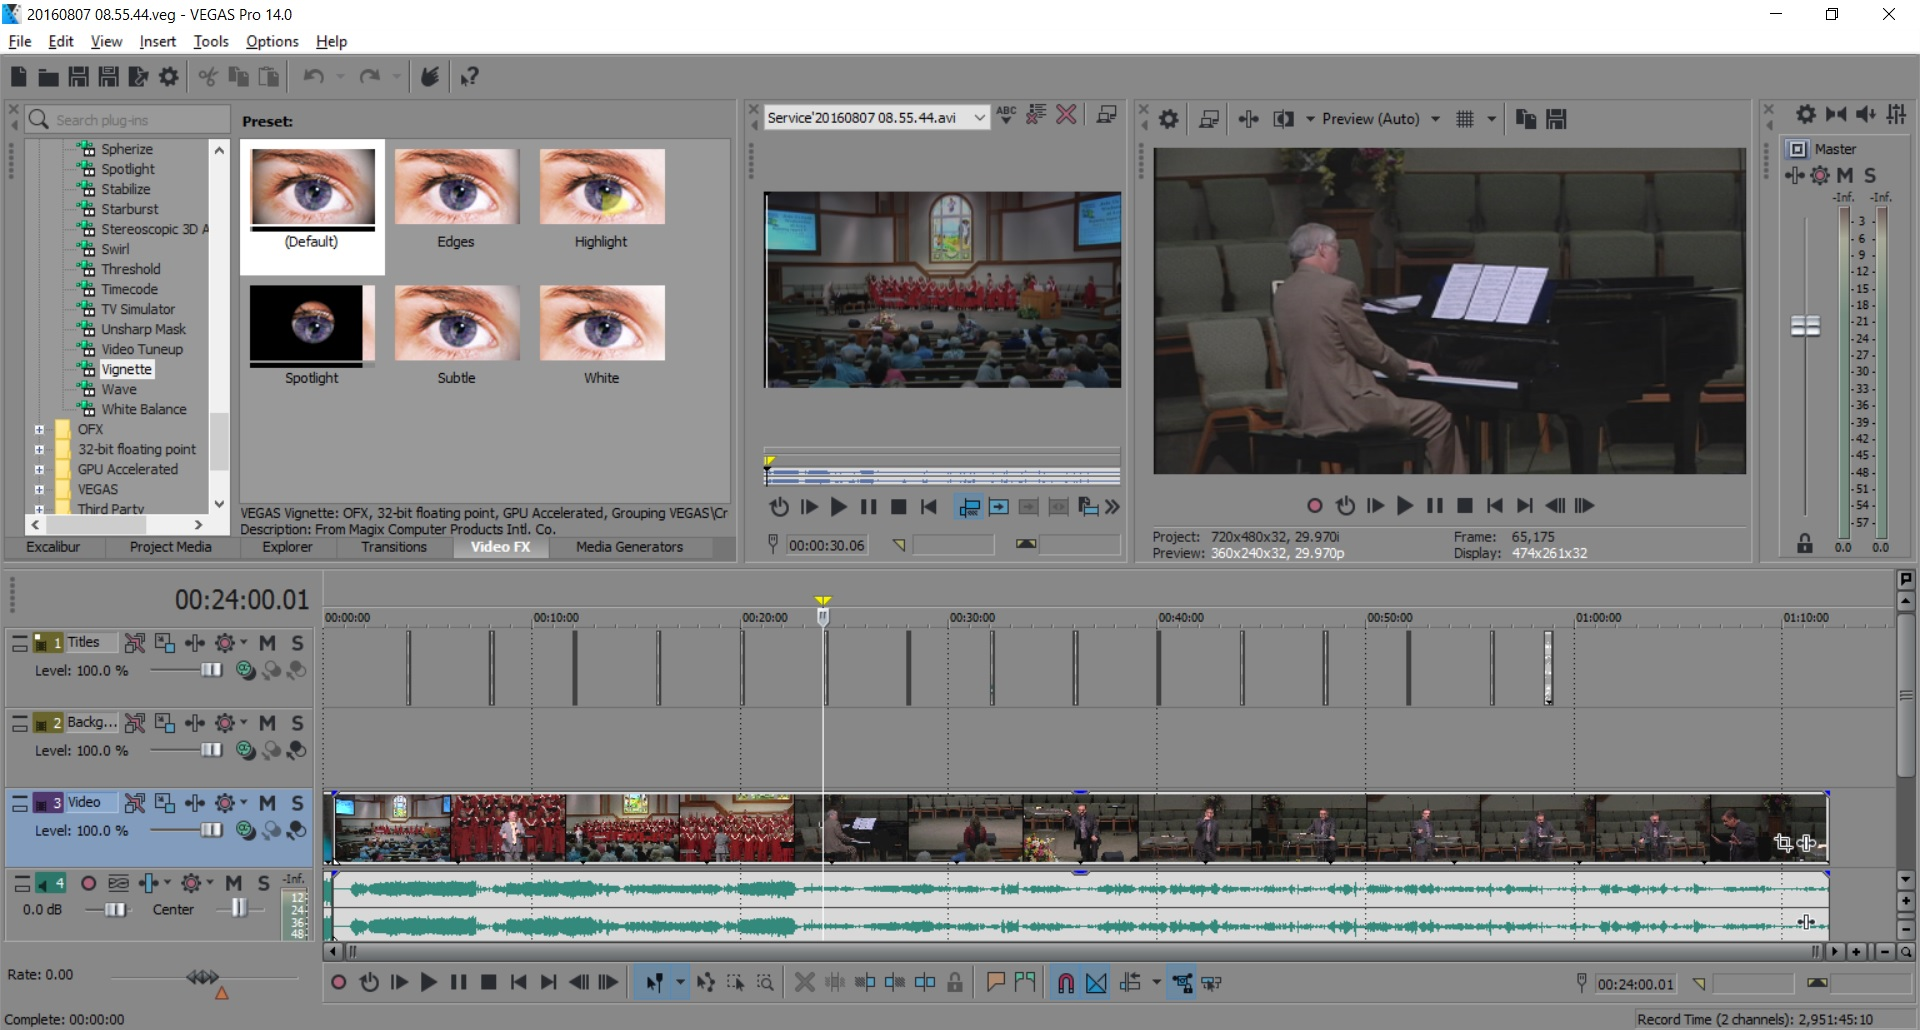 sony vegas pro 13 crack serial number free download